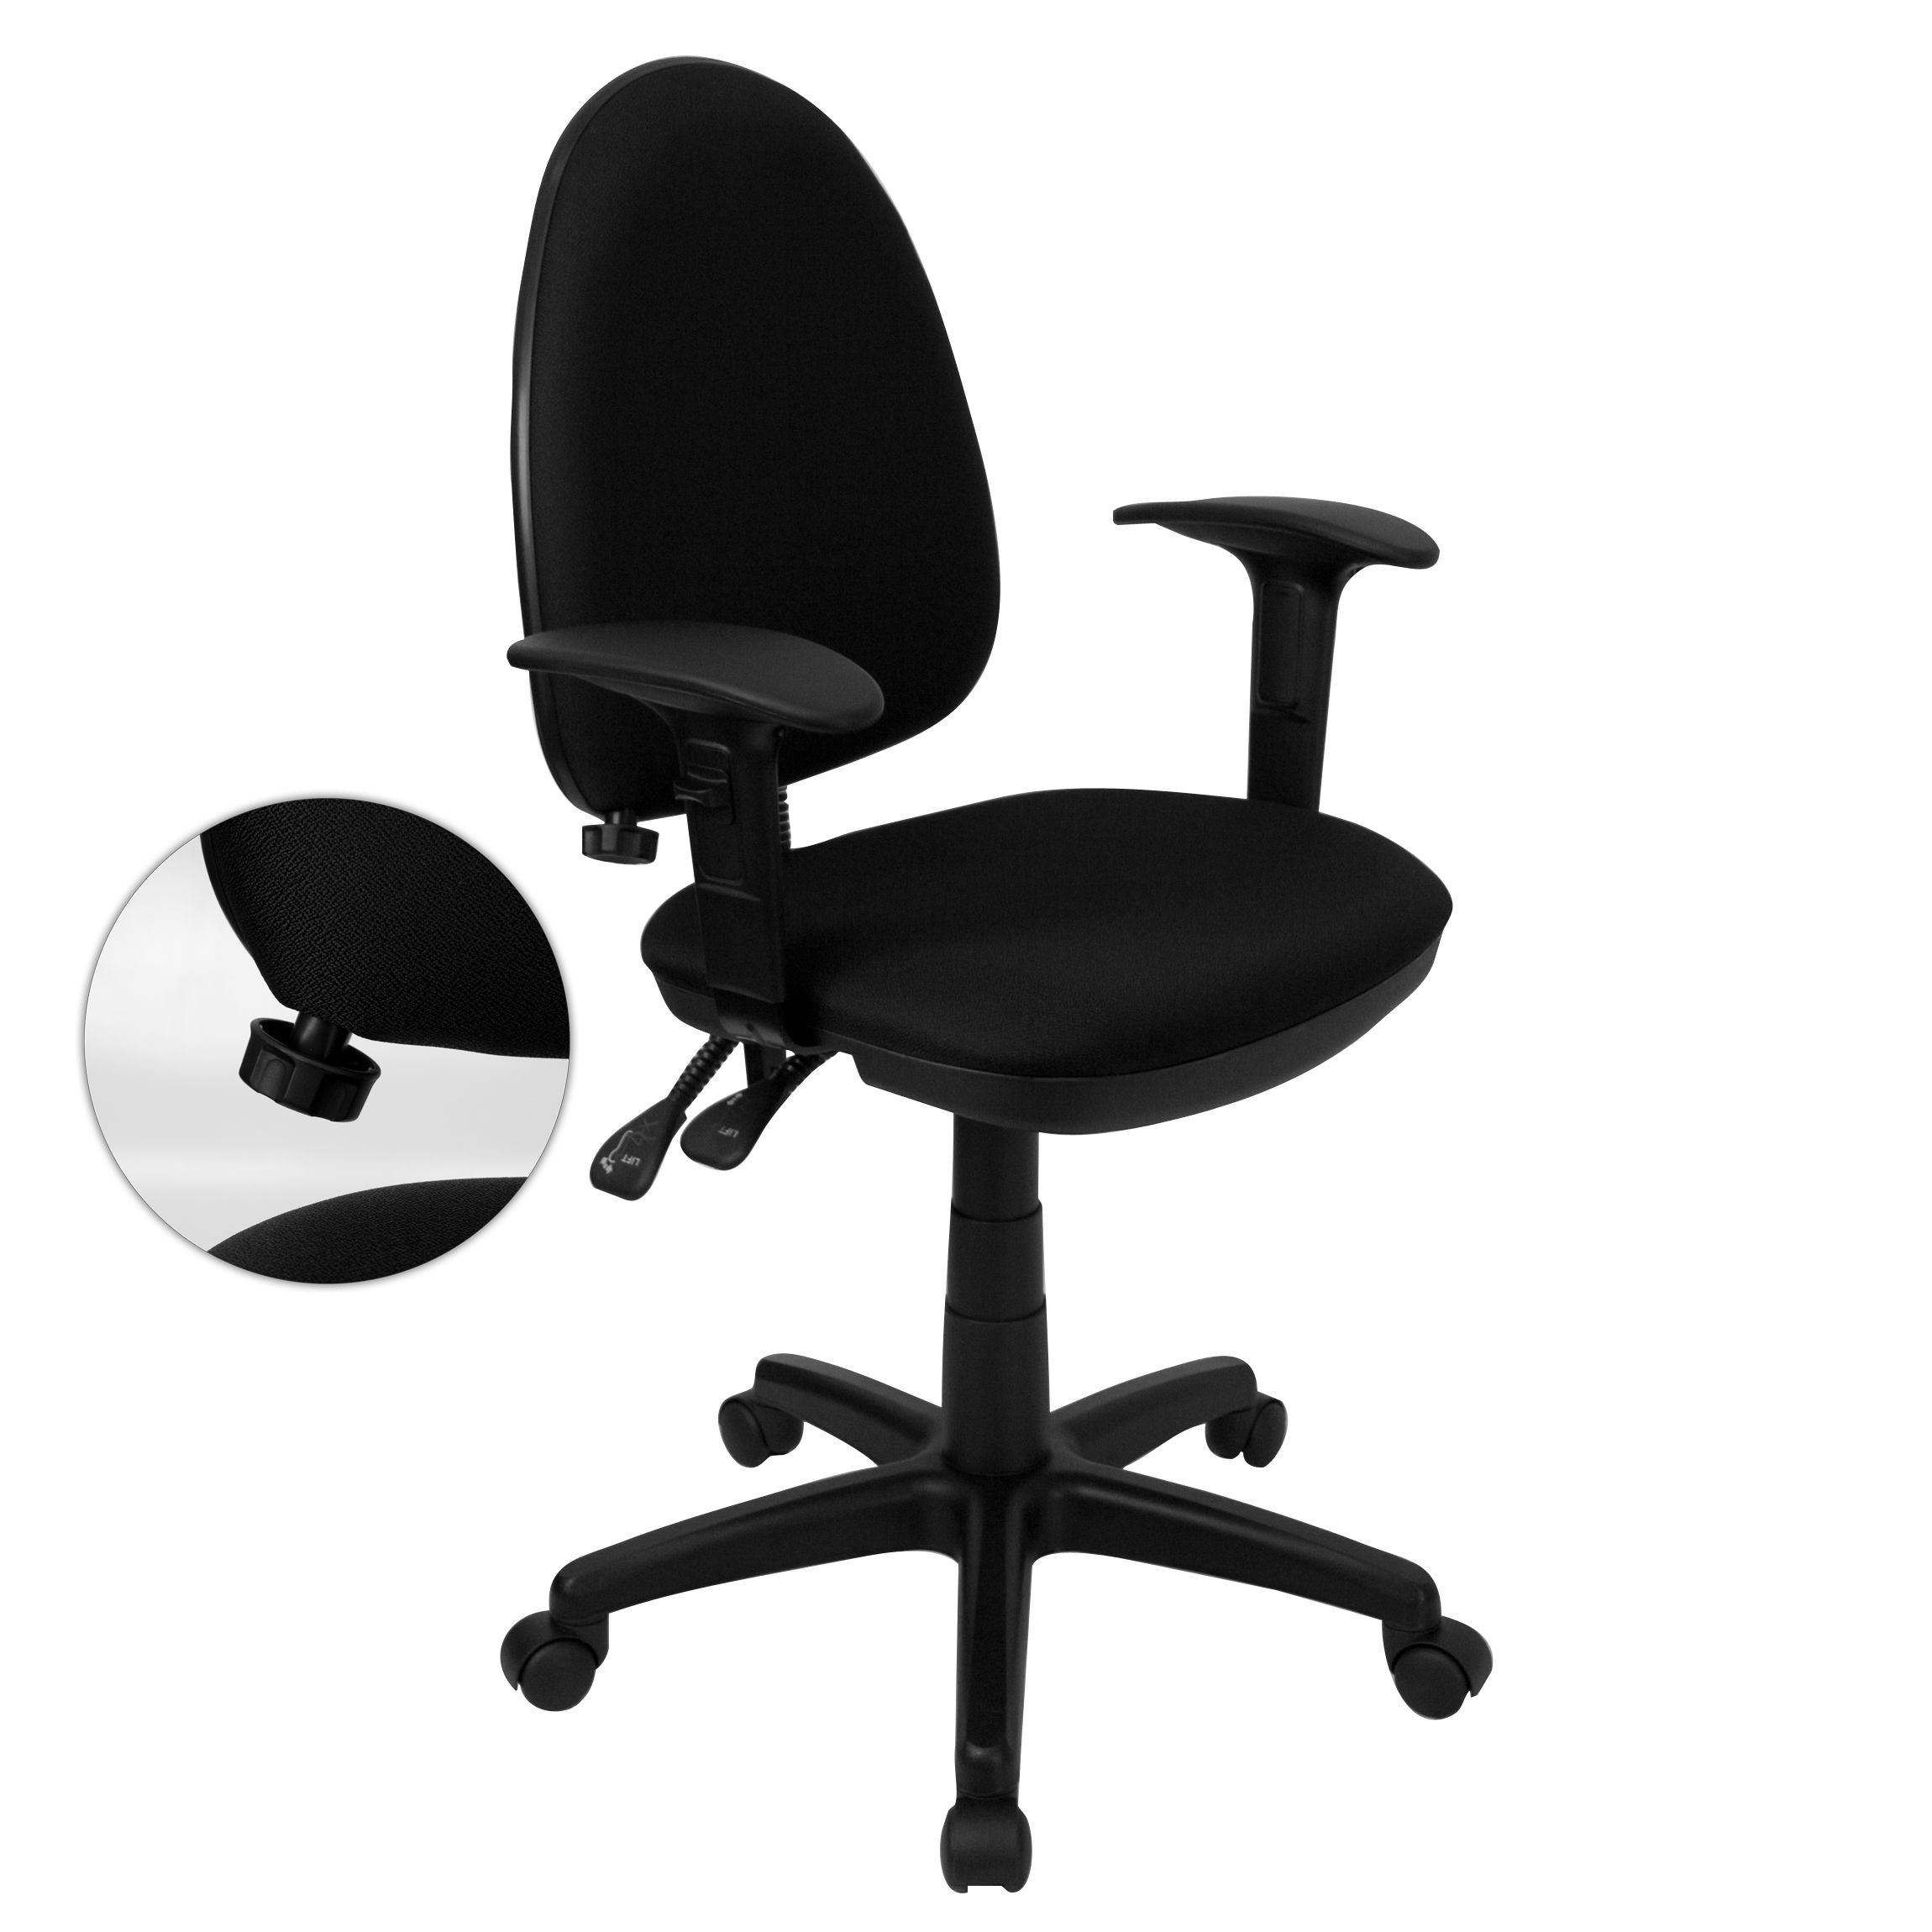 Black Fabric Multi-Function Task Chair with Adjustable Lumbar Support, Arms